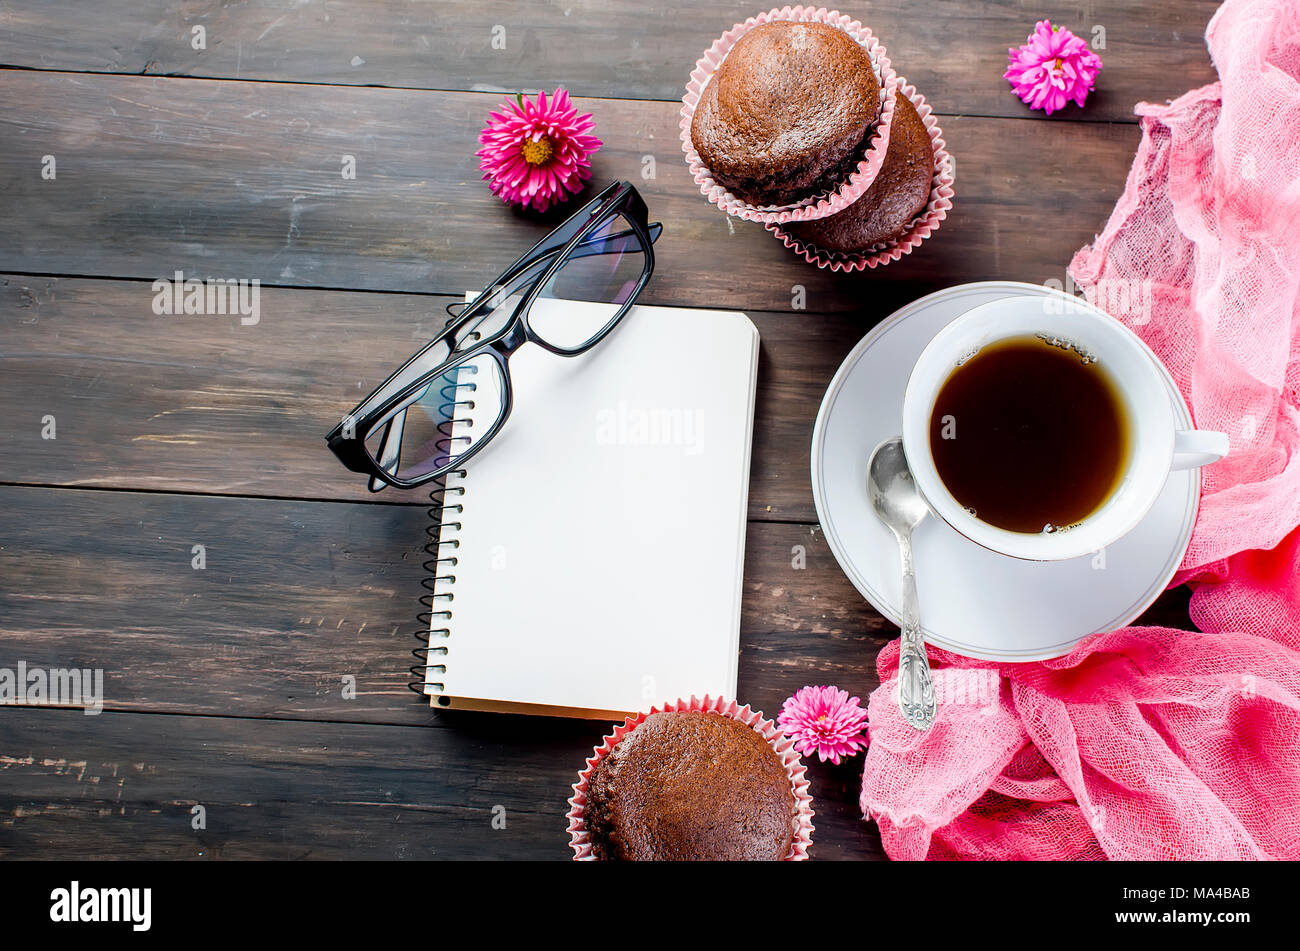 chocolate muffins and a cup of coffee breakfast and planning a day of a notebook, still life on a dark wooden table. Copy space, top view. - Stock Image